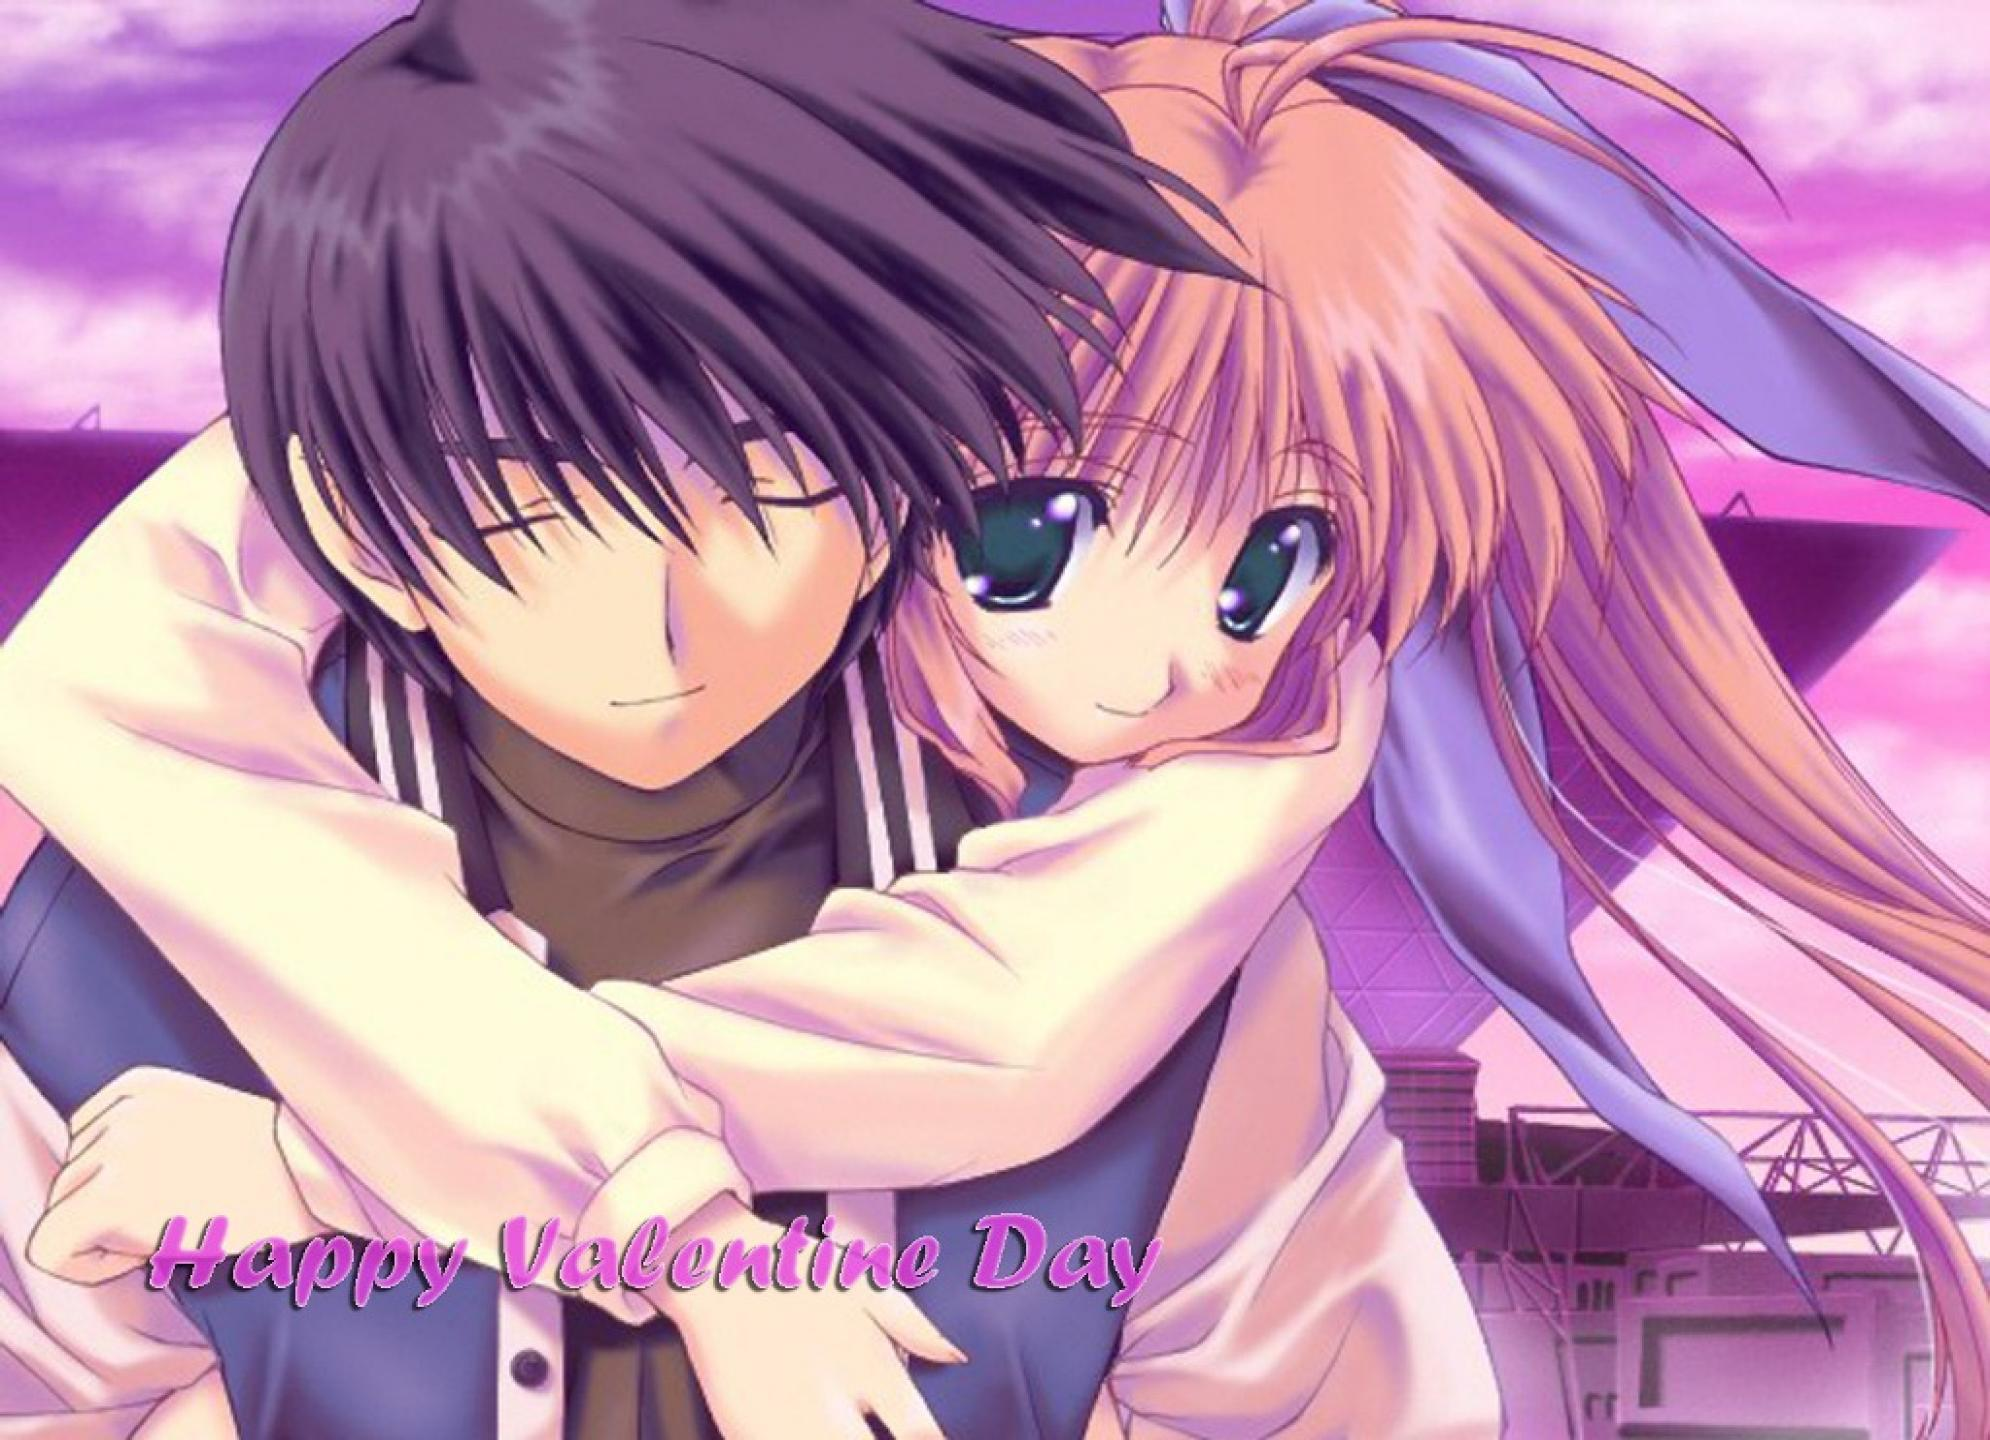 Sweet Anime Love Wallpaper Desktop : Love Anime Wallpapers - Wallpaper cave